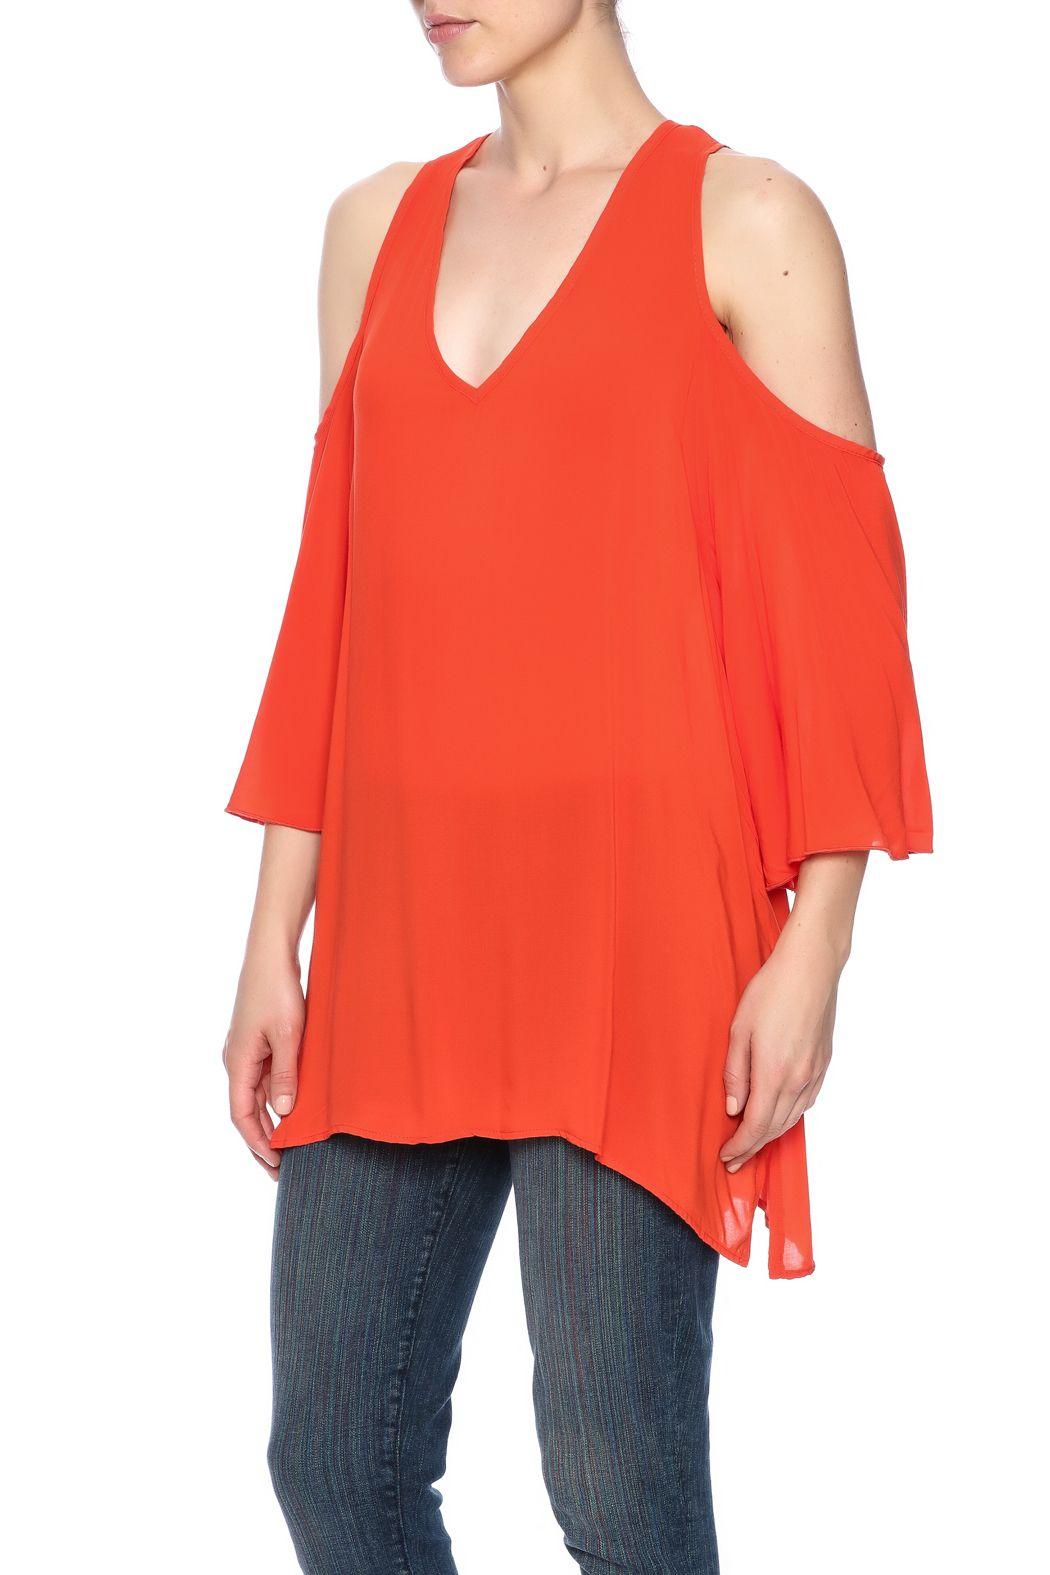 2d639cc7cef6cc Tangerine oversized top with 3 4 sleeves